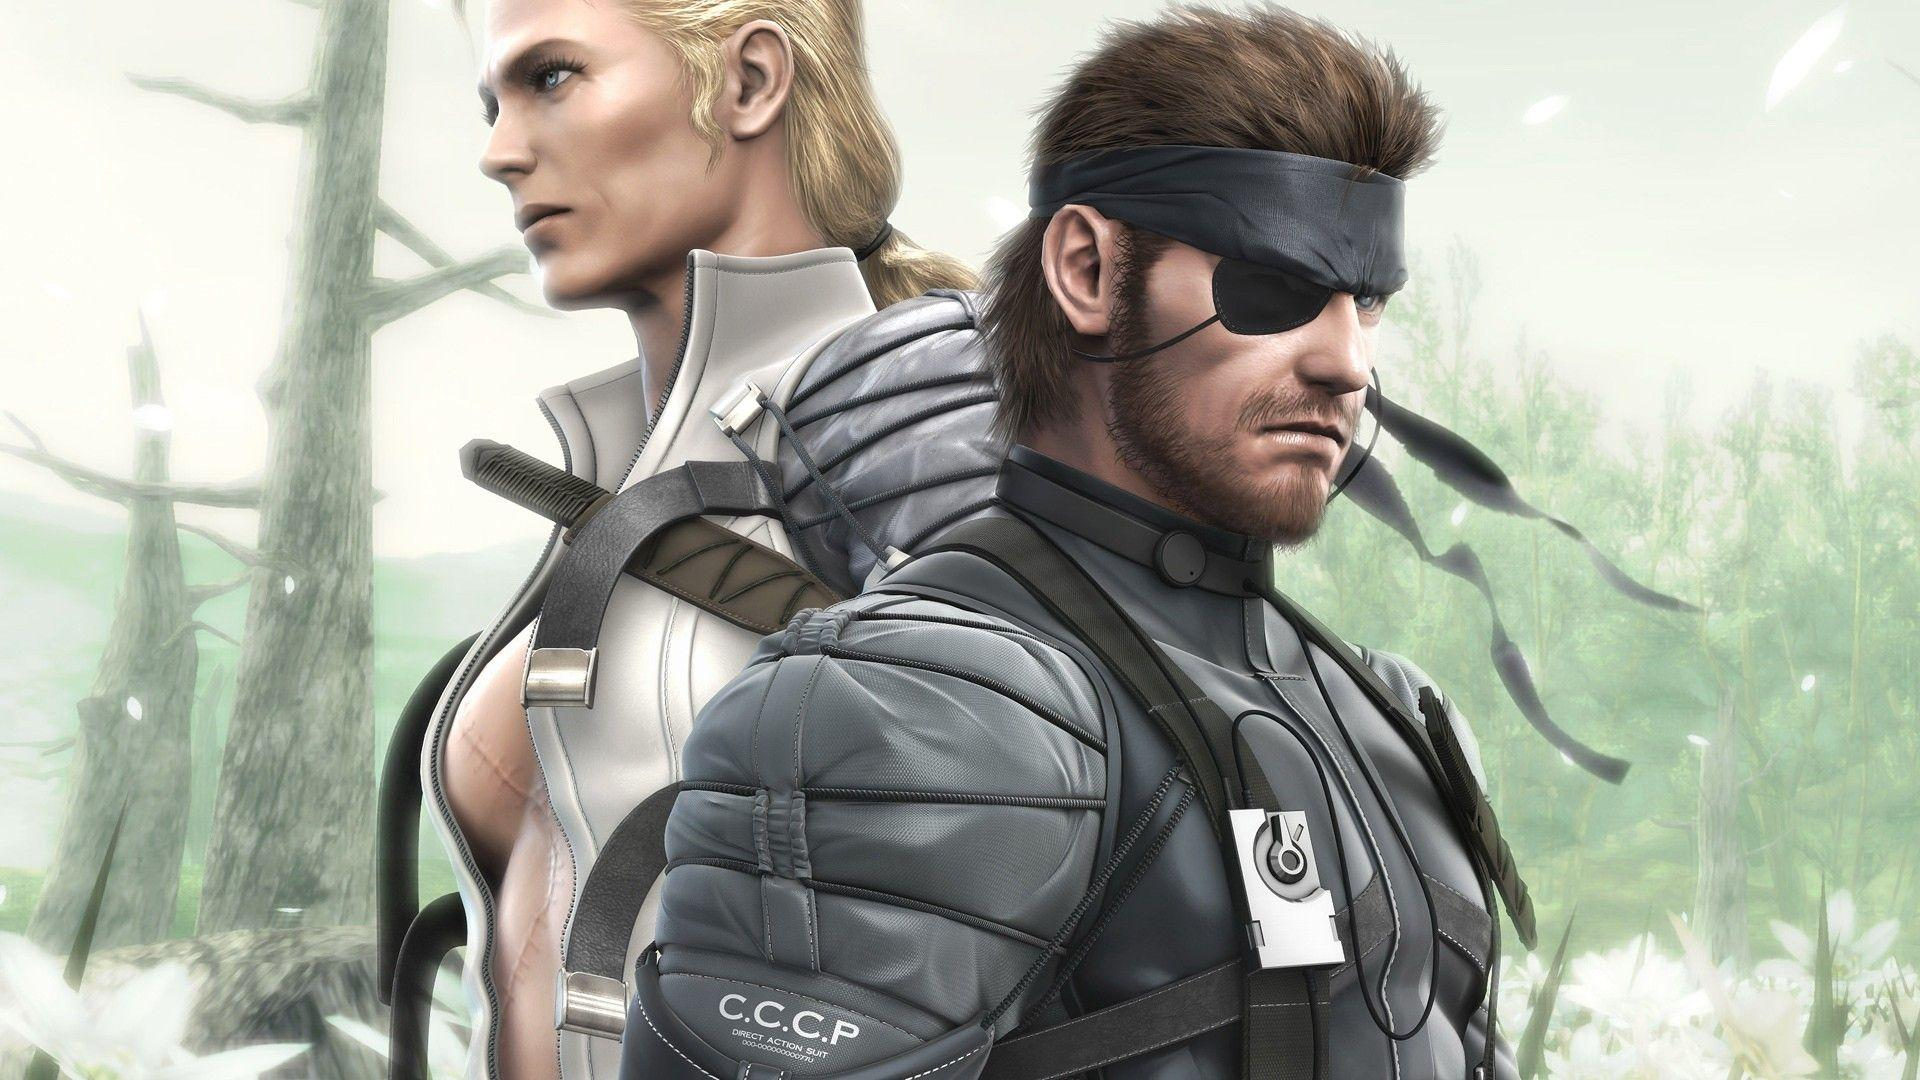 metal gear hd wallpapers - photo #38